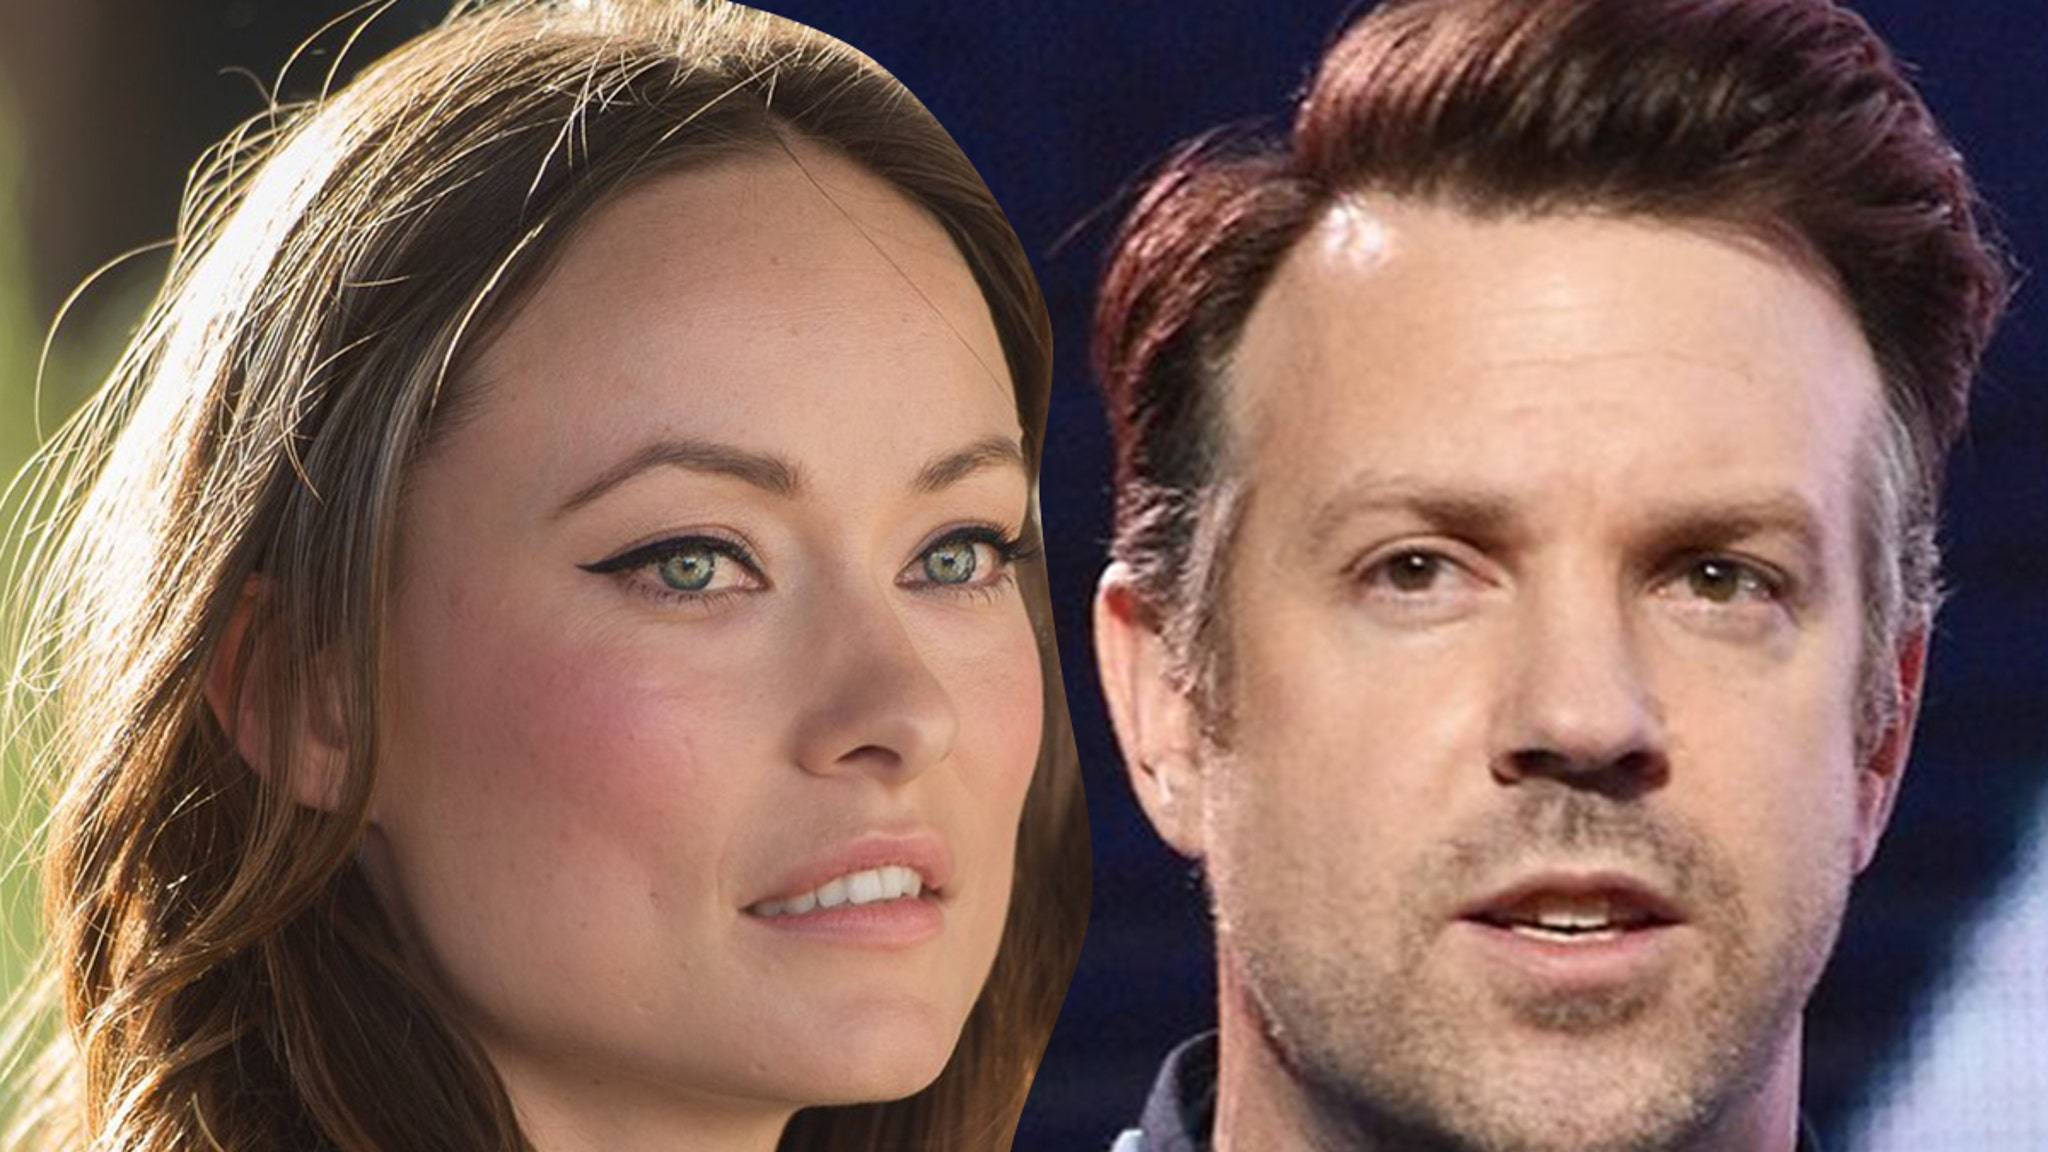 Olivia Wilde and Jason Sudeikis Get Protection From Alleged Stalker thumbnail